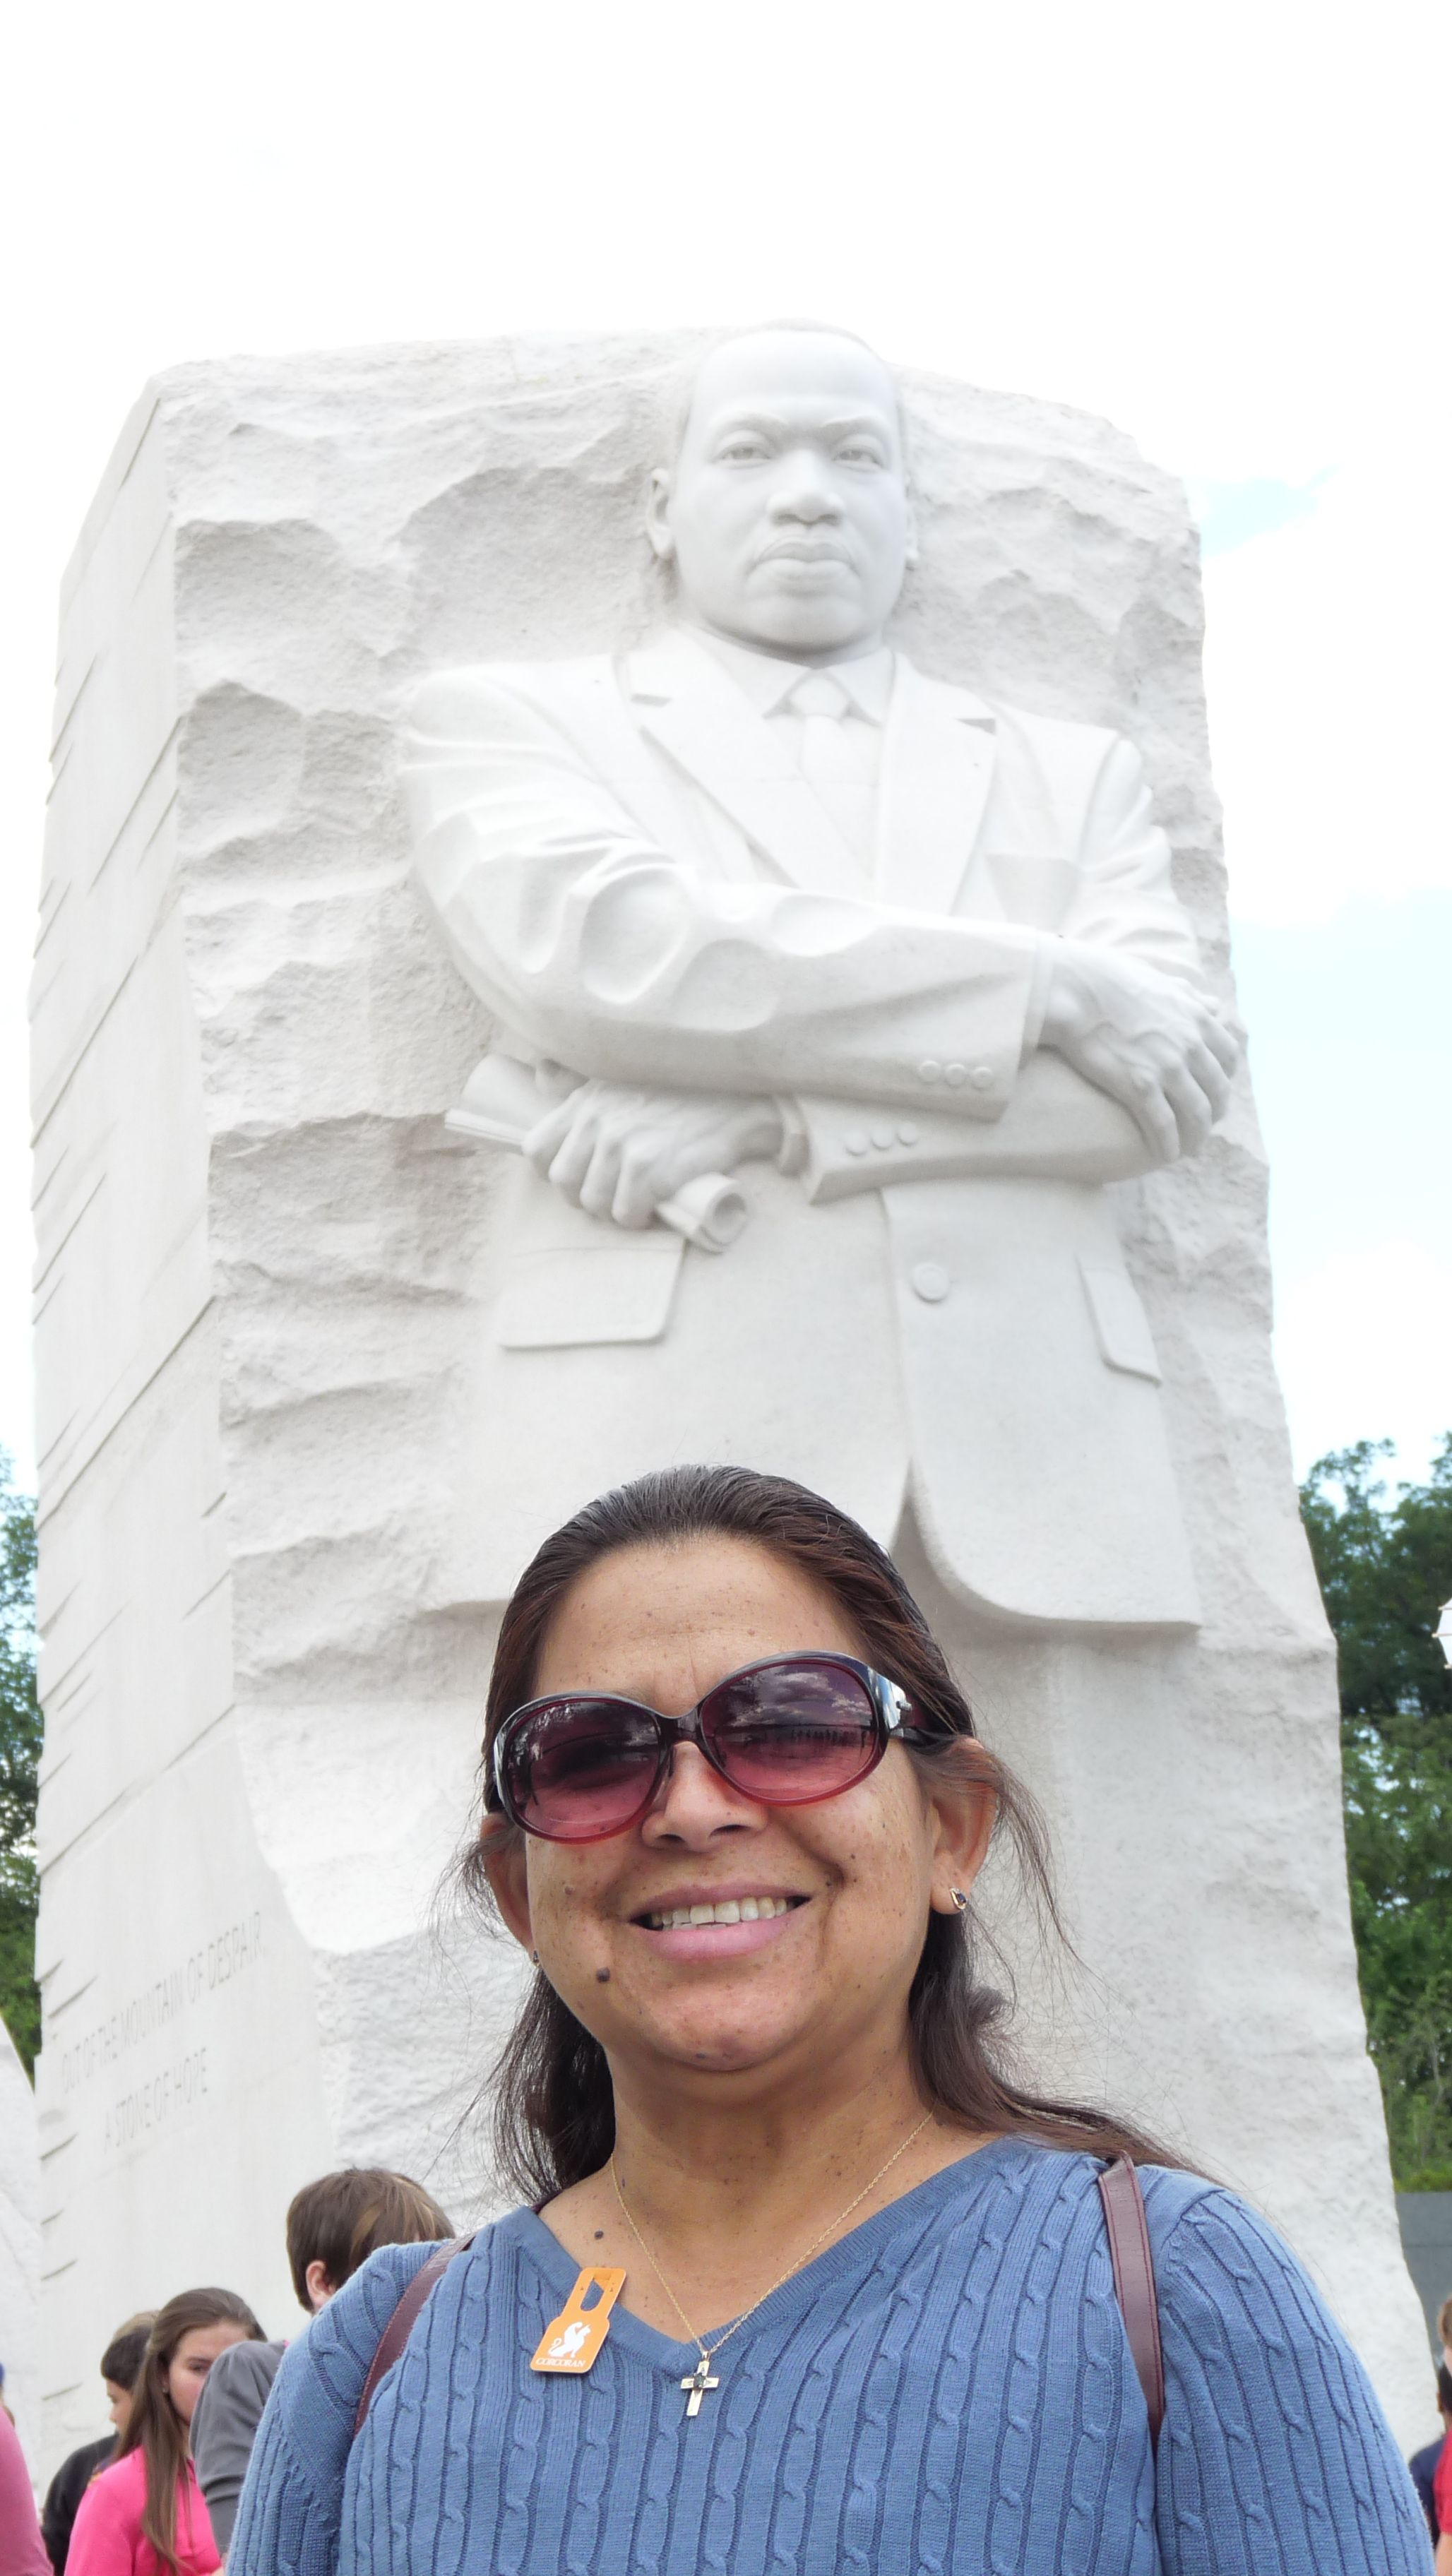 In Washington DC/Dr. MLK Monument